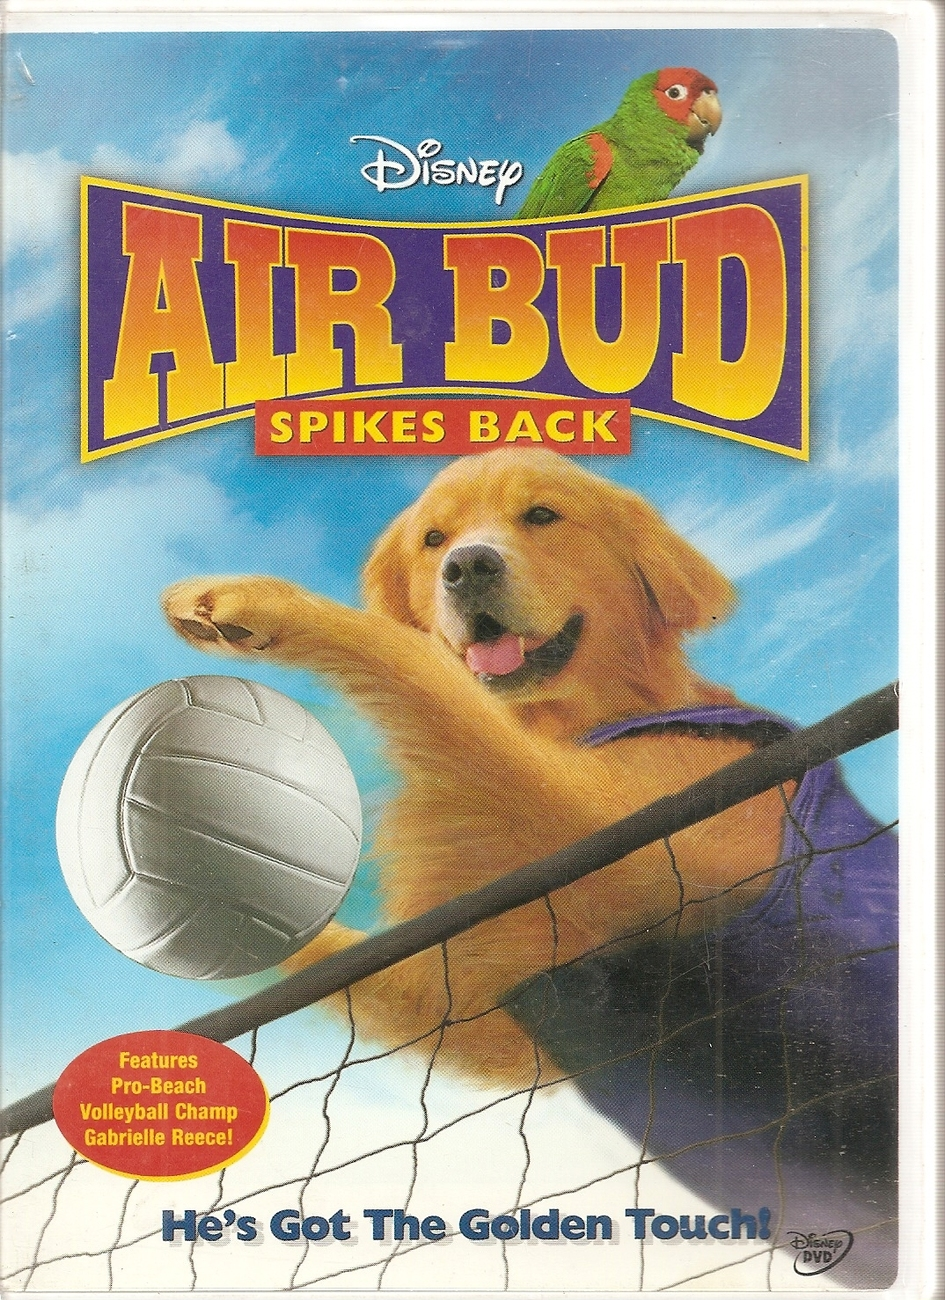 dvd--Air Bud Spikes Back